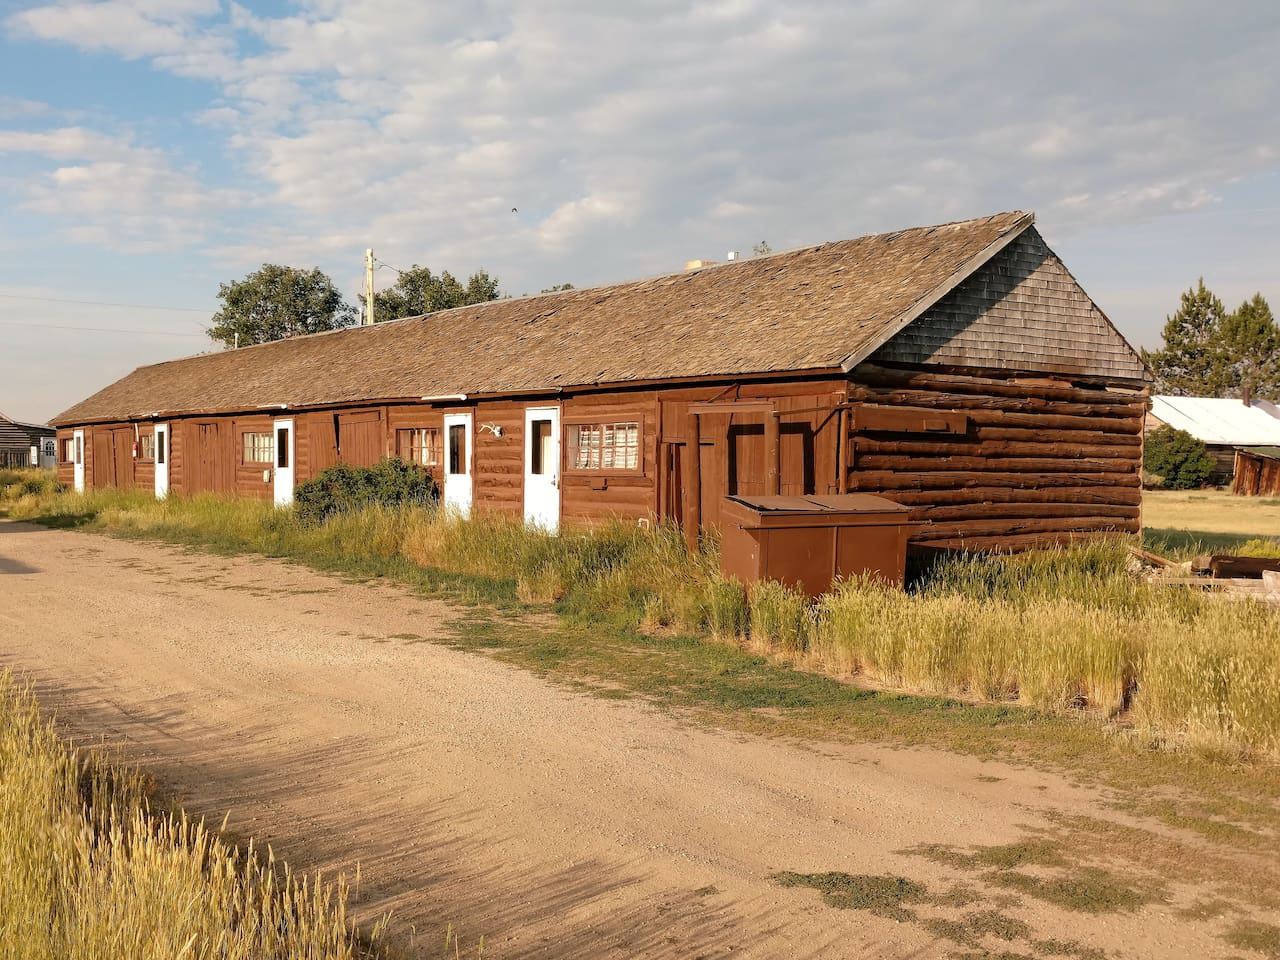 Southwest View of Cabins